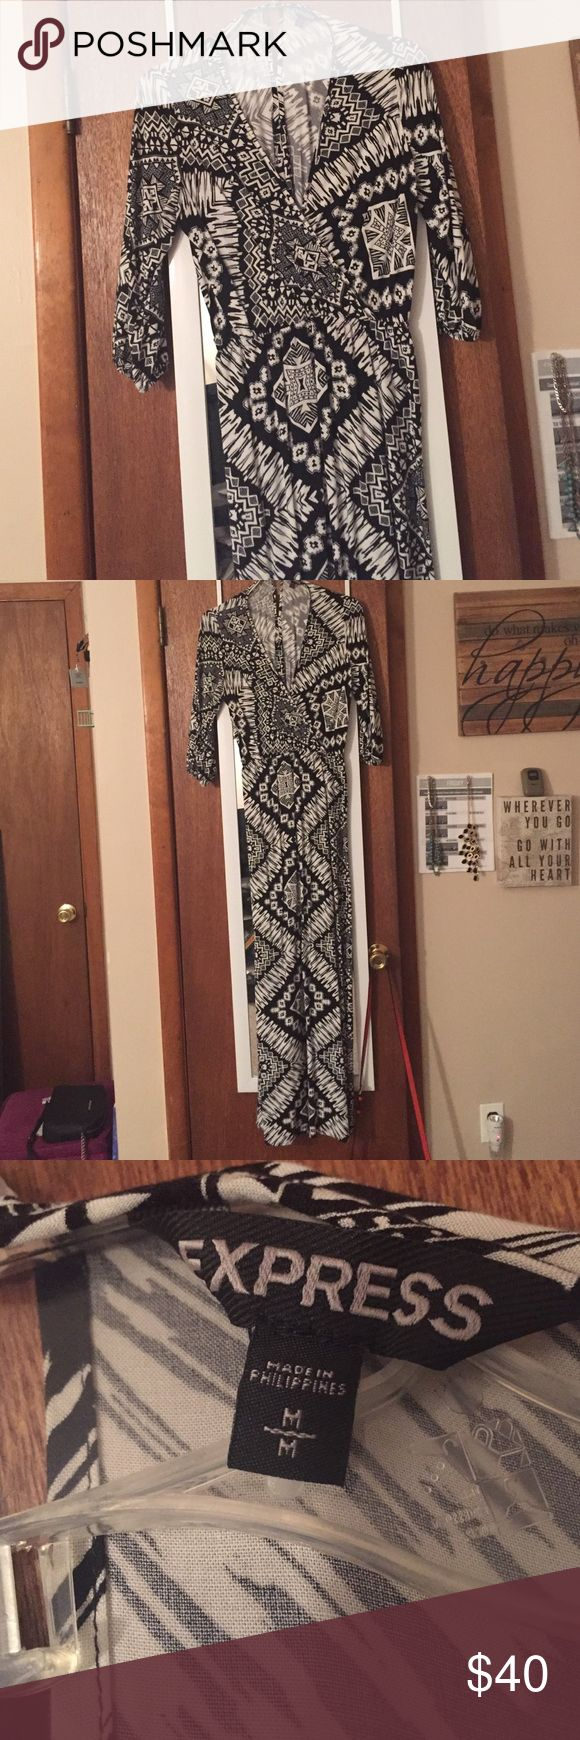 Final: Express Maxi Dress Size M- can a size L. elegant Aztec patterned maxi dress that can be worn to many events (classy, work, going out, &etc) • 3/4 sleeve • elastic waistband • there is a hook near the neckline to make the deep neckline more secure • keyhole back •from a pet/smoke free environment •11/14 Express Dresses Maxi